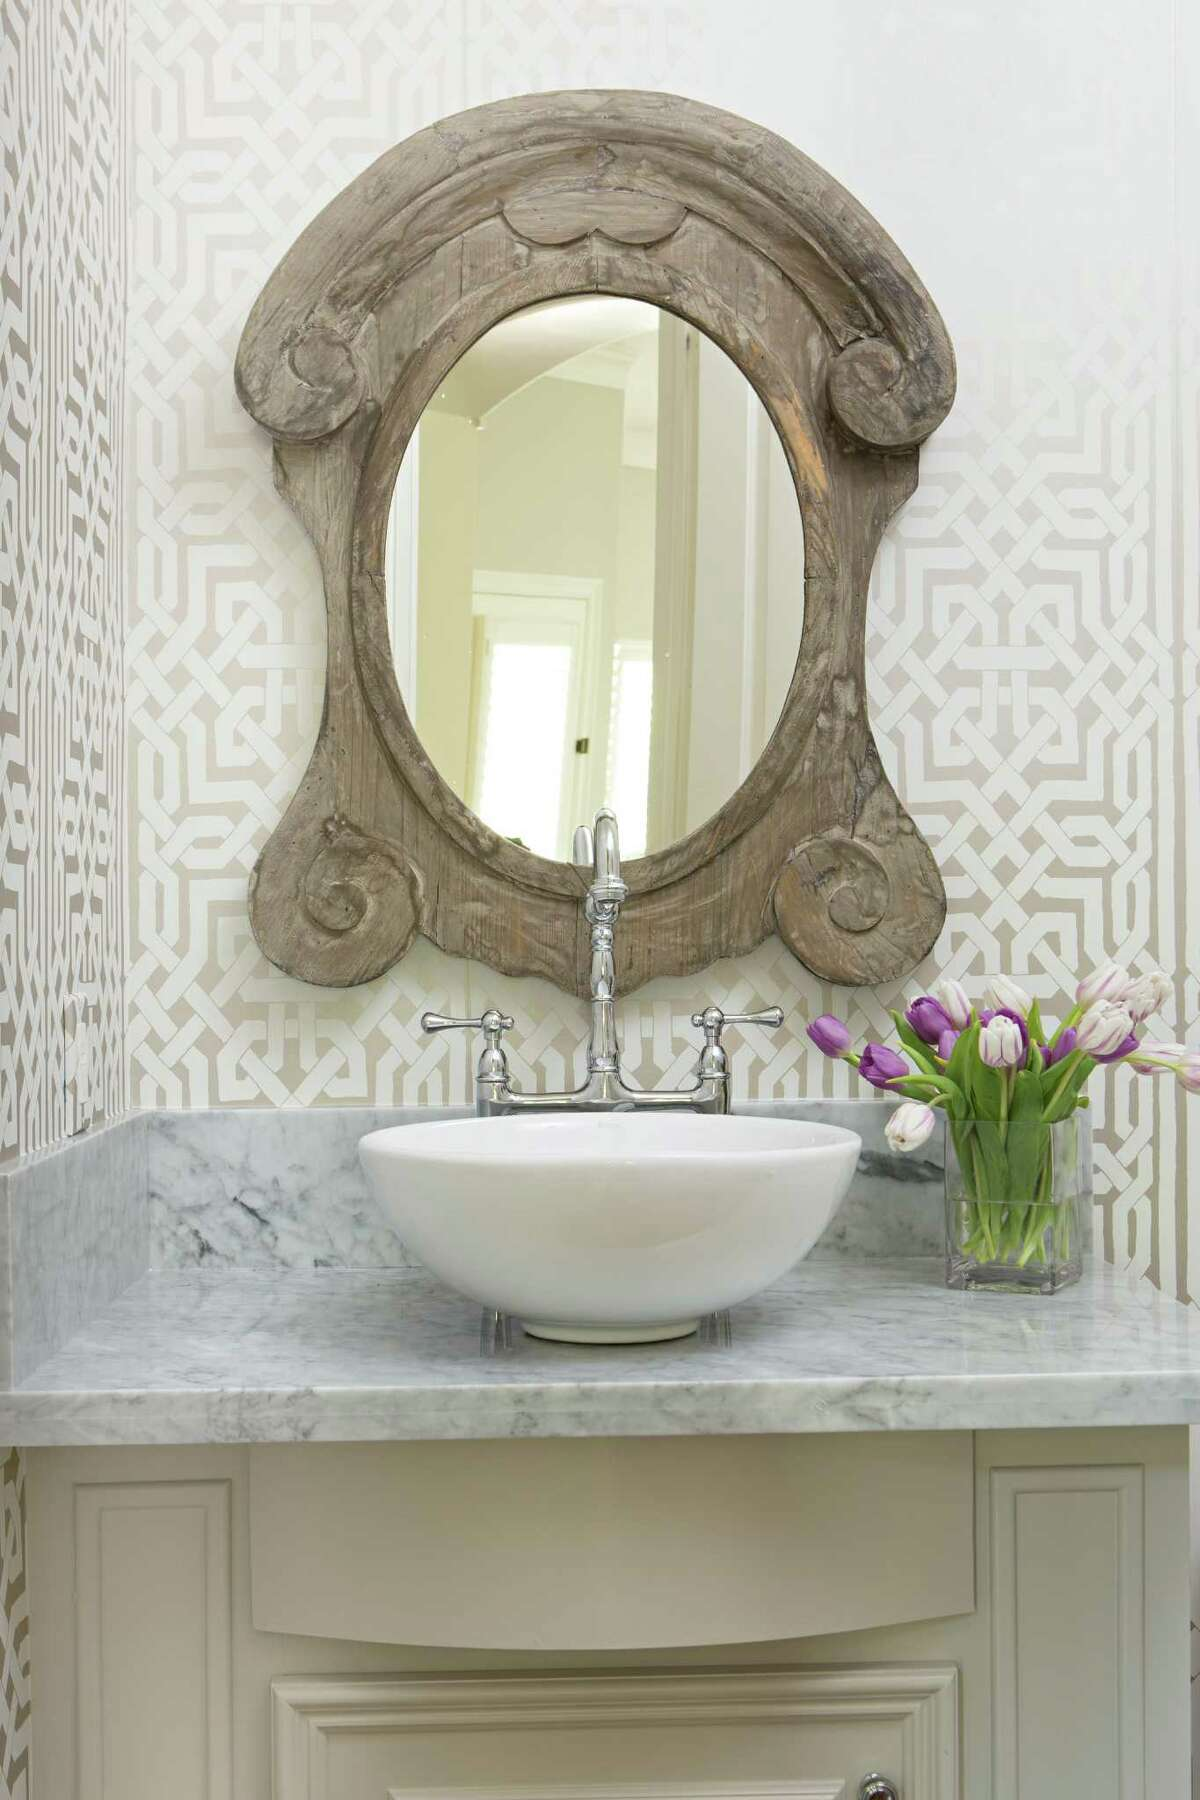 This powder room in The Woodlands is light and bright, but designer Amanda Eck chose a bold wallpaper to add rich texture to the small space.